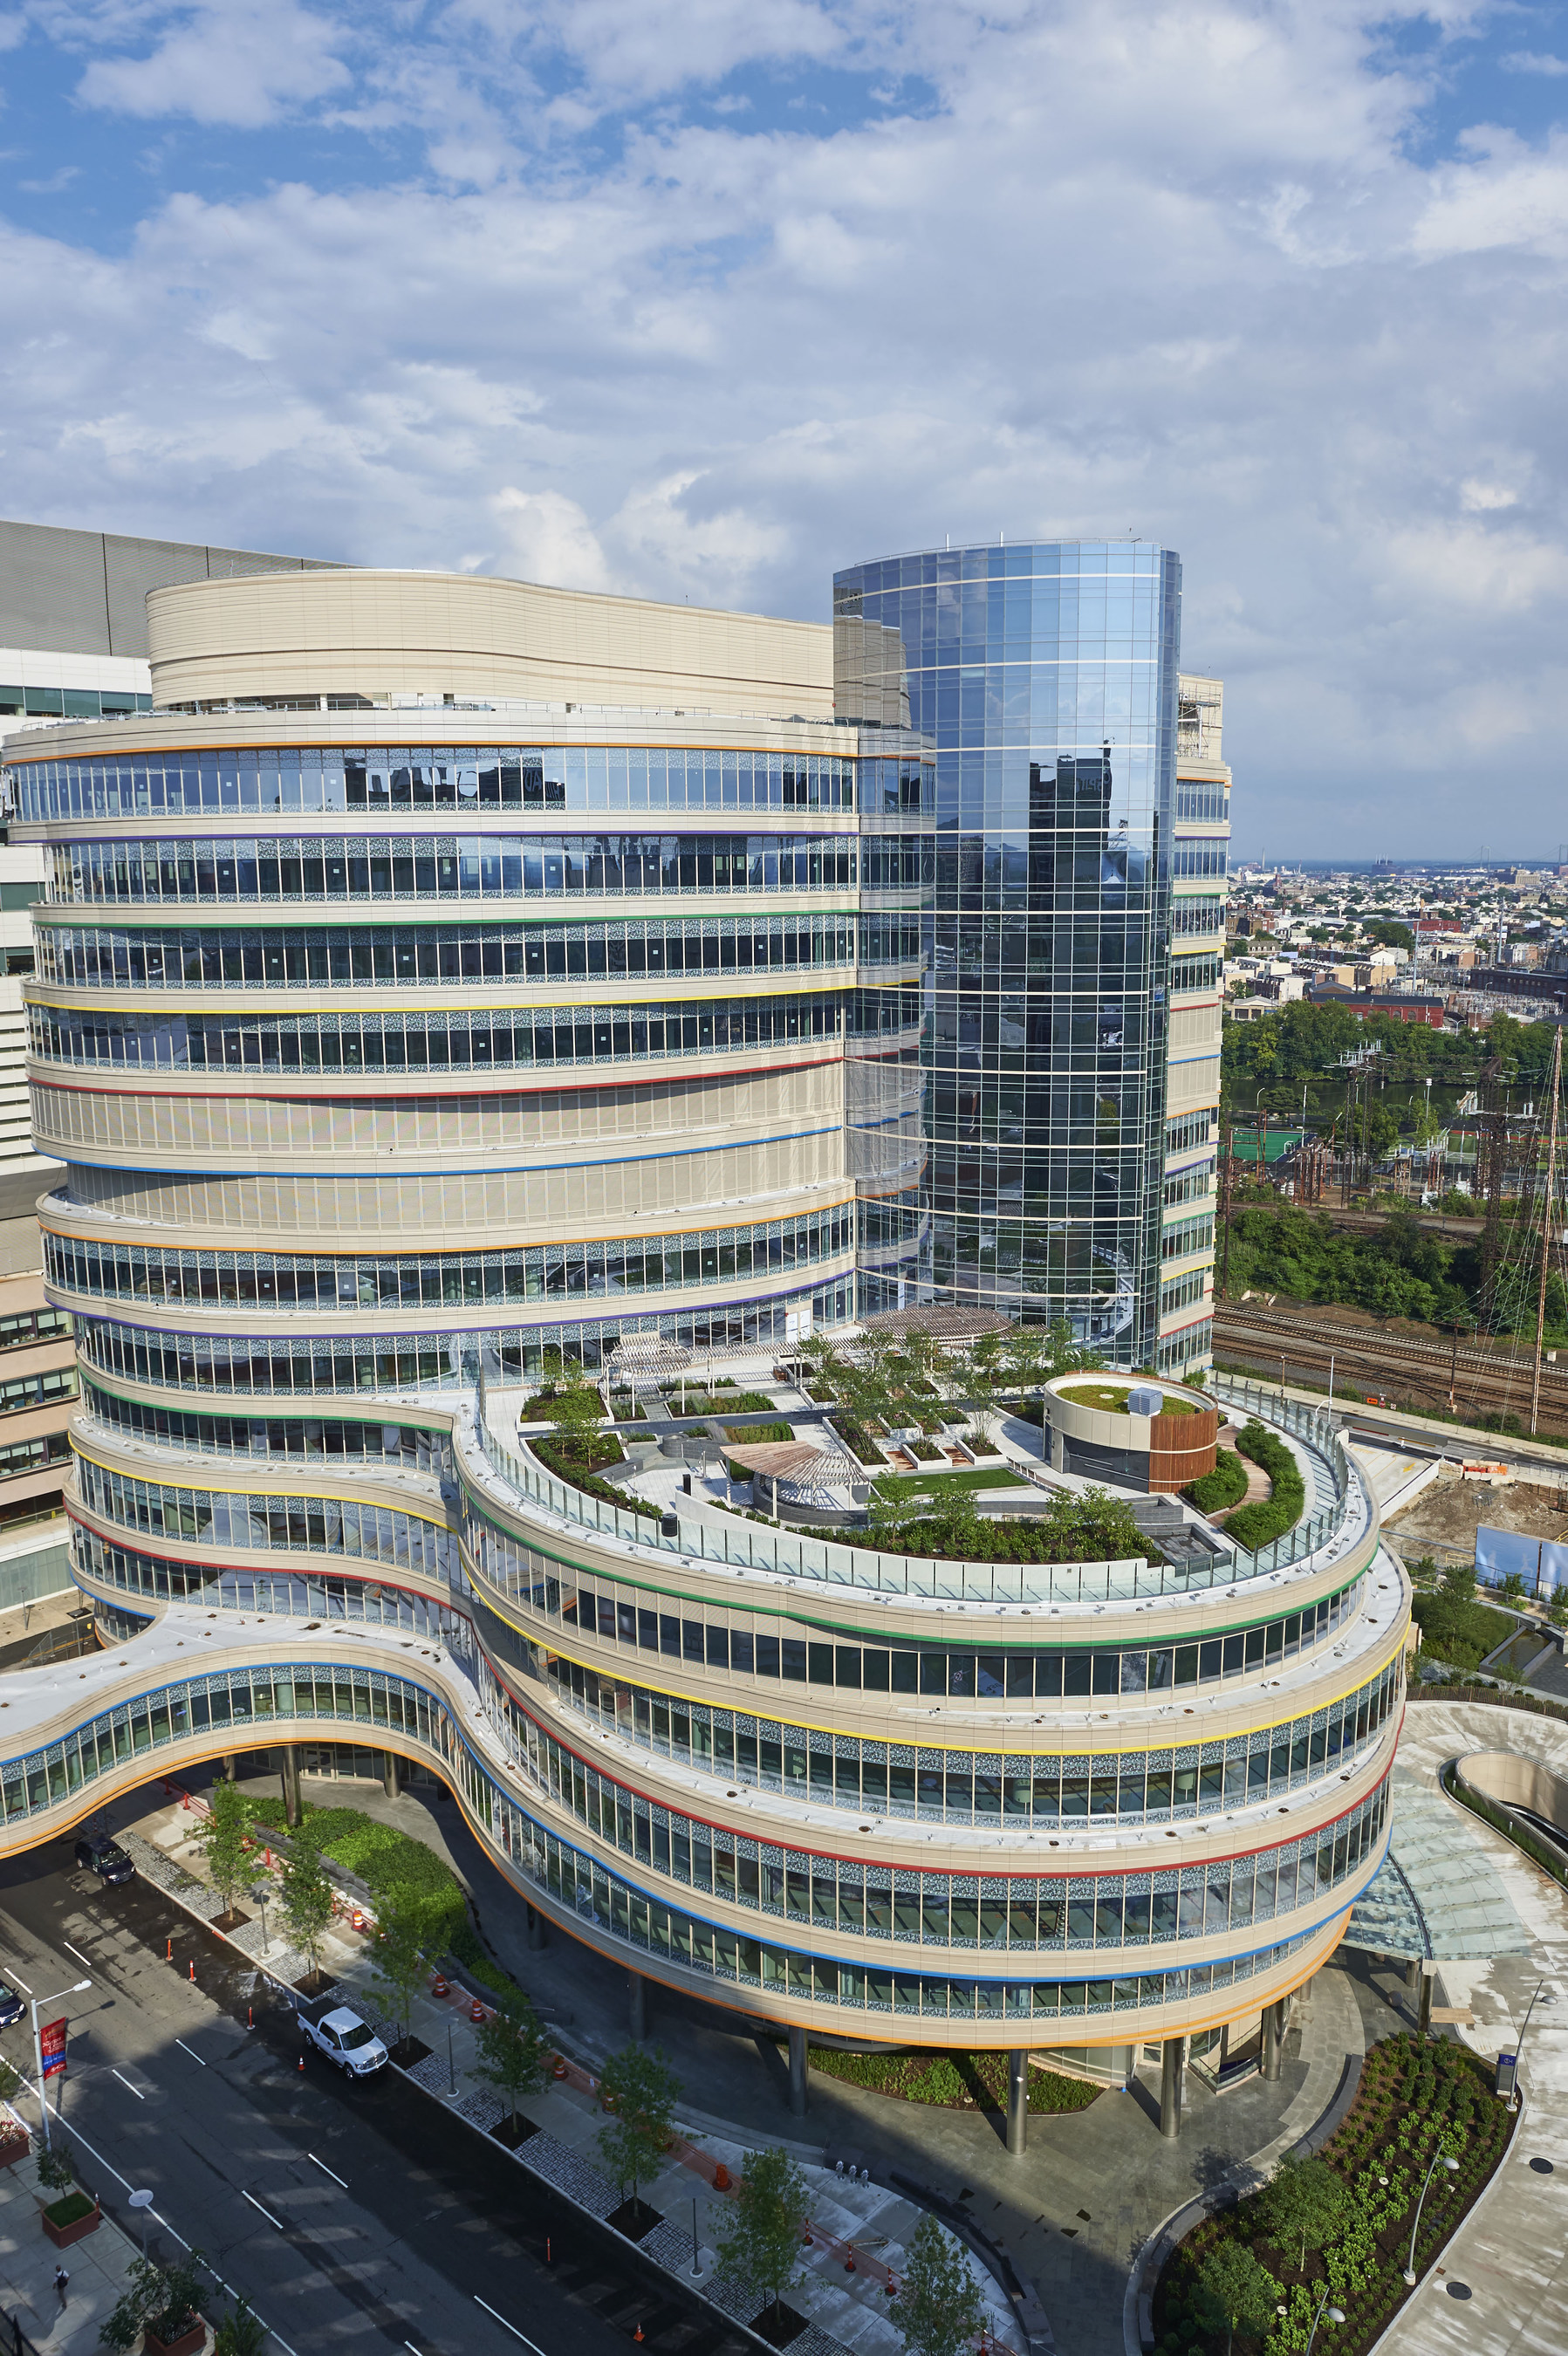 The Children's Hospital of Philadelphia's New Buerger Center for Advanced Pediatric Care Opens on July 27, 2015. Building on Family Input, 12-Story Facility is the Most Advanced Outpatient Pediatric Facility in U.S.